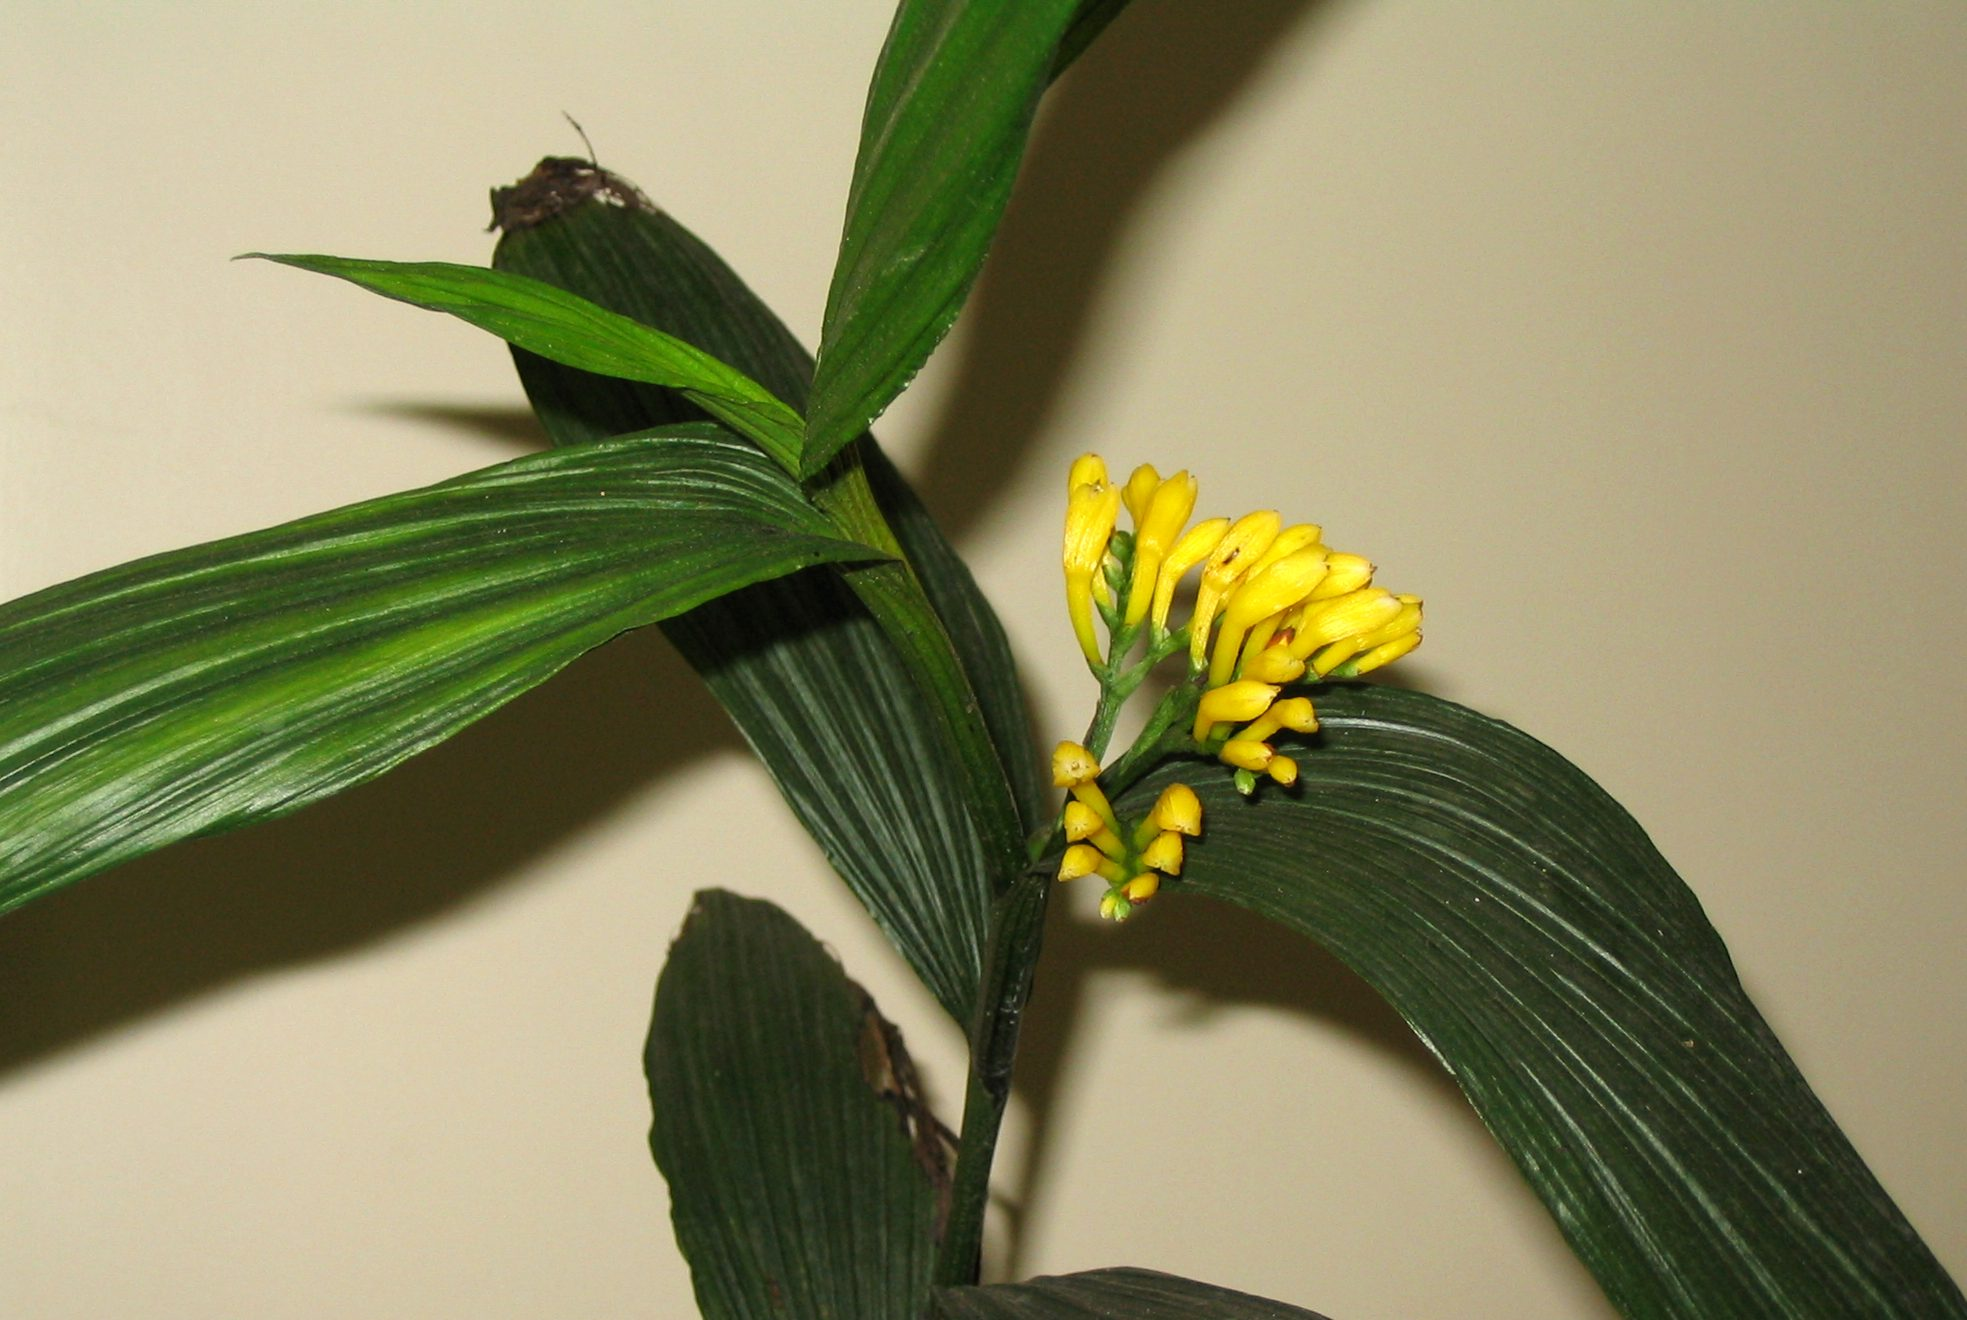 Corymborchis flava inflorescence, by Roberto Takase